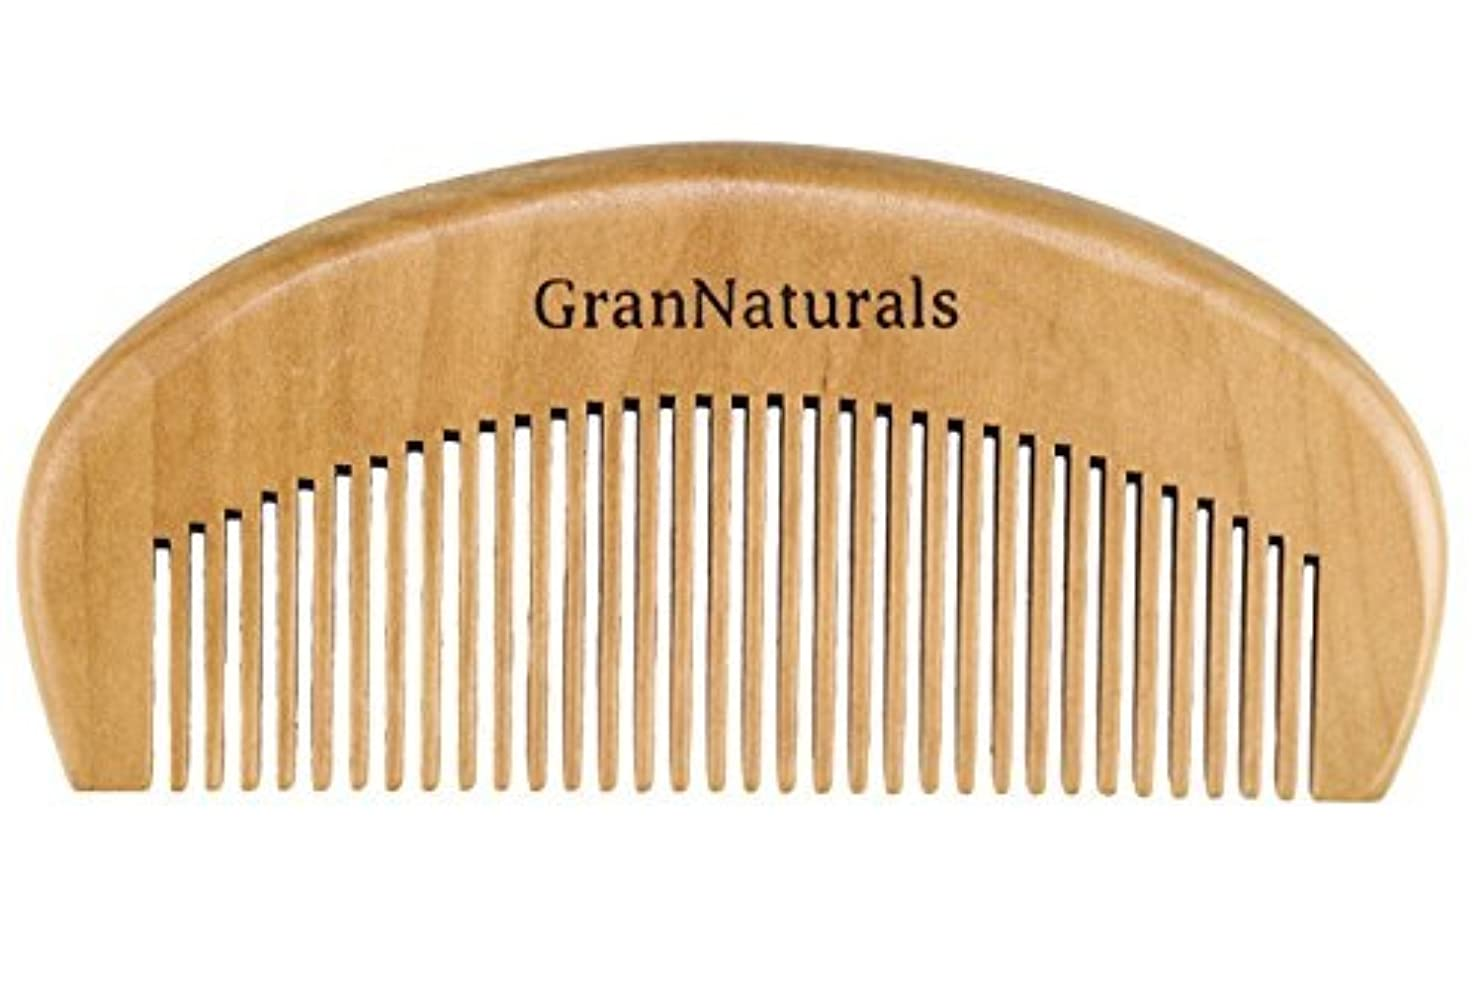 作るキルス広告主GranNaturals Wooden Comb Hair + Beard Detangler for Women and Men - Natural Anti Static Wood for Detangling and...